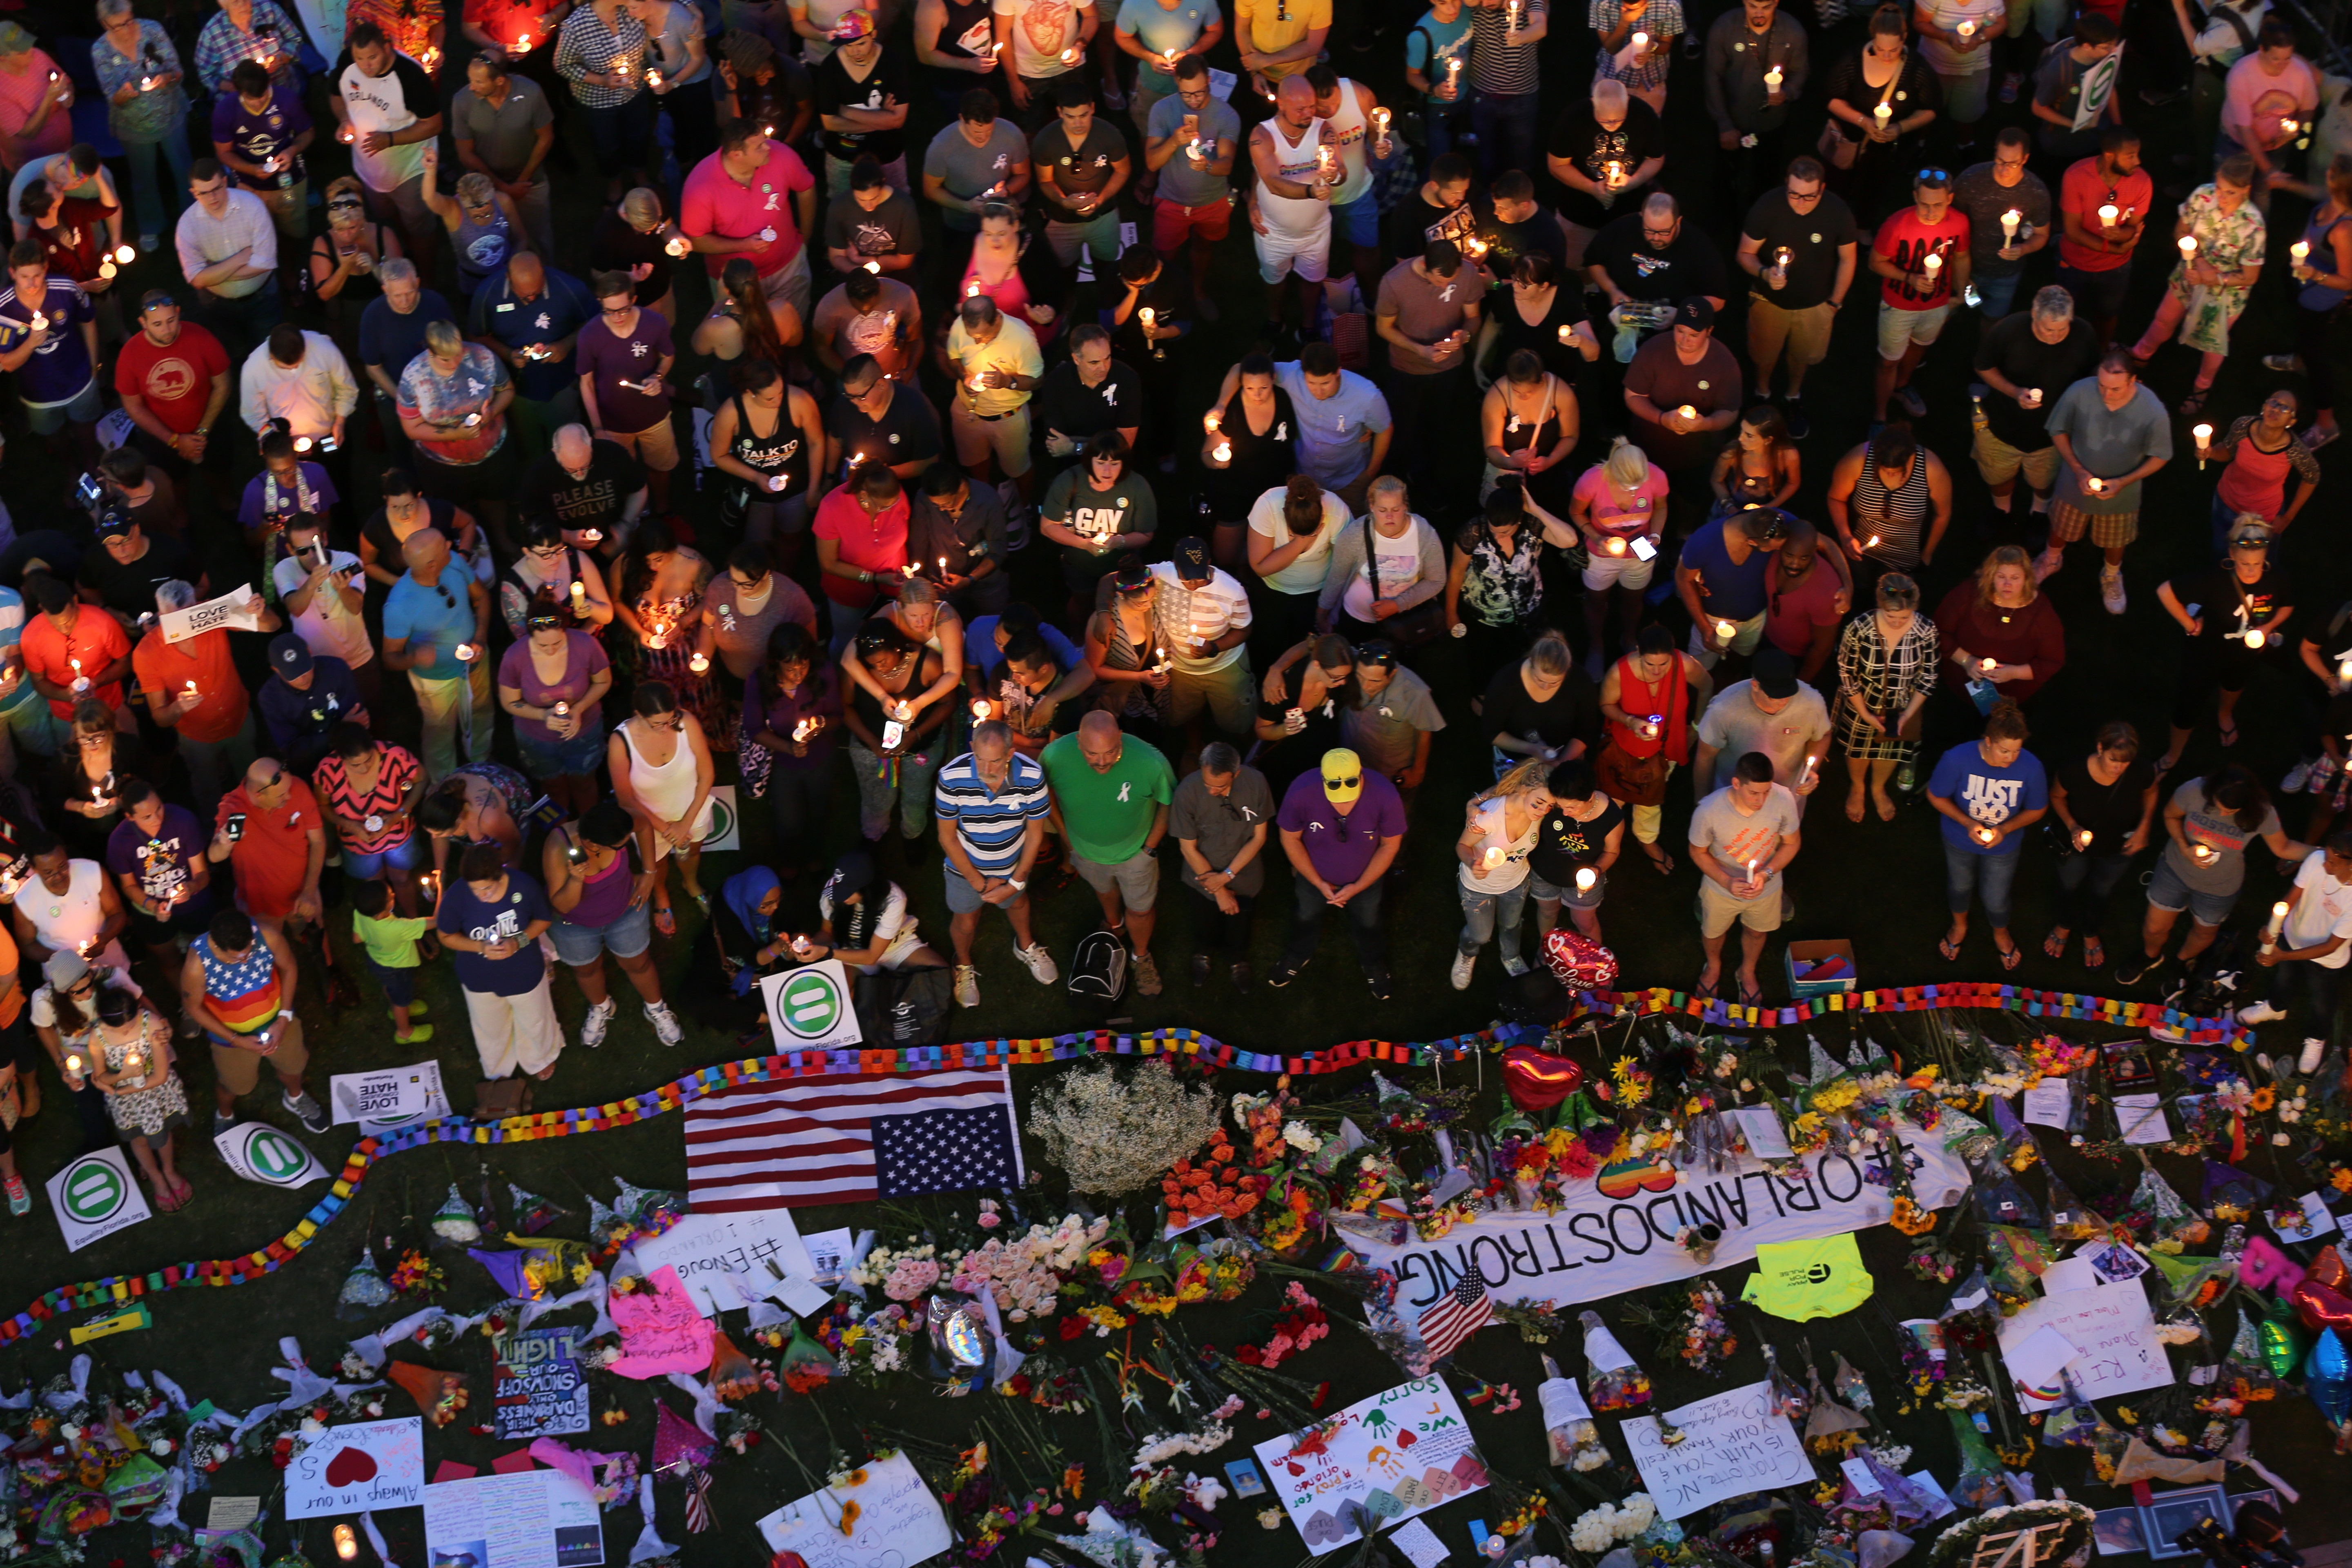 mothers of pulse victims want churches to toll bells 49 times on